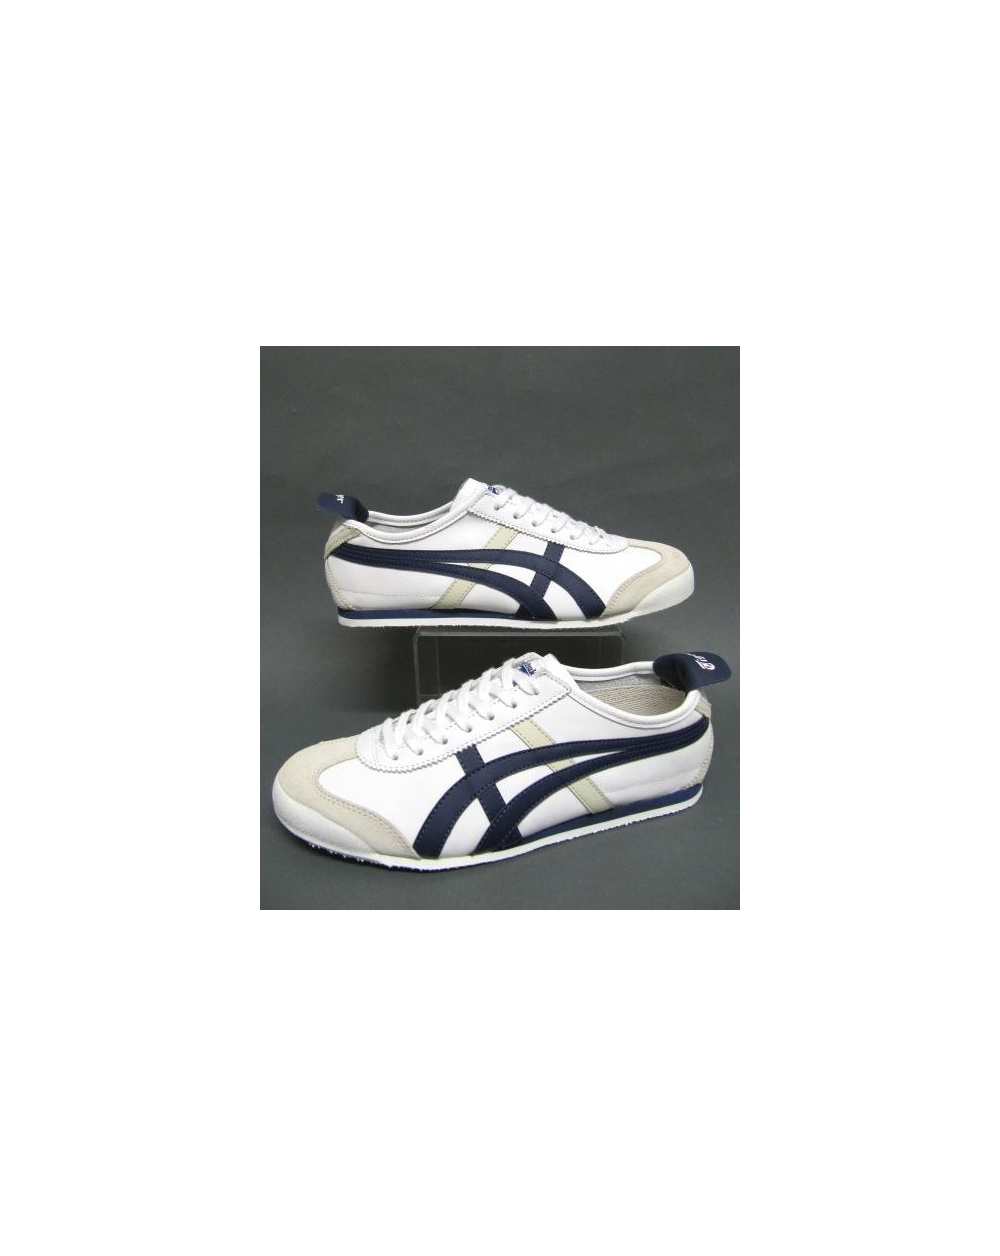 quality design 65c03 fe985 Onitsuka Tiger Mexico 66 Trainers White/navy